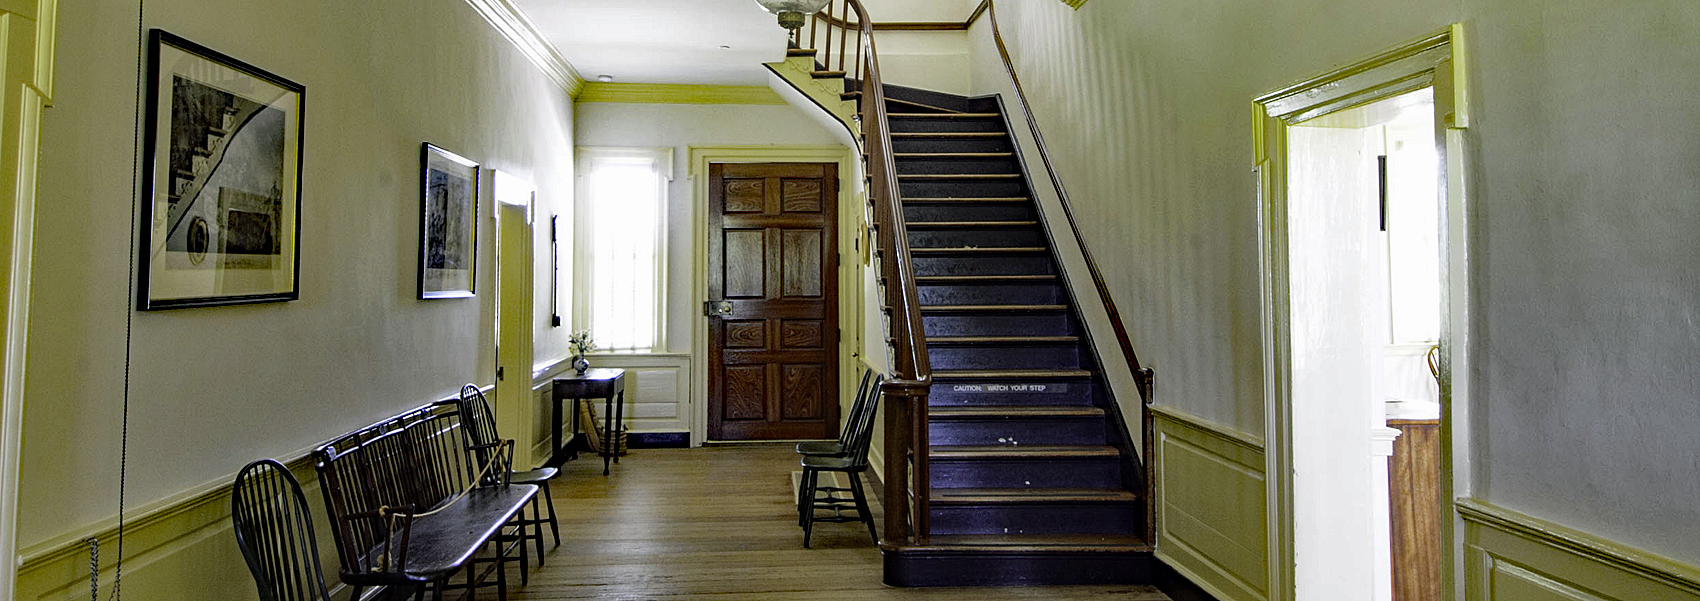 Hallway with stairs inside Sully's main house